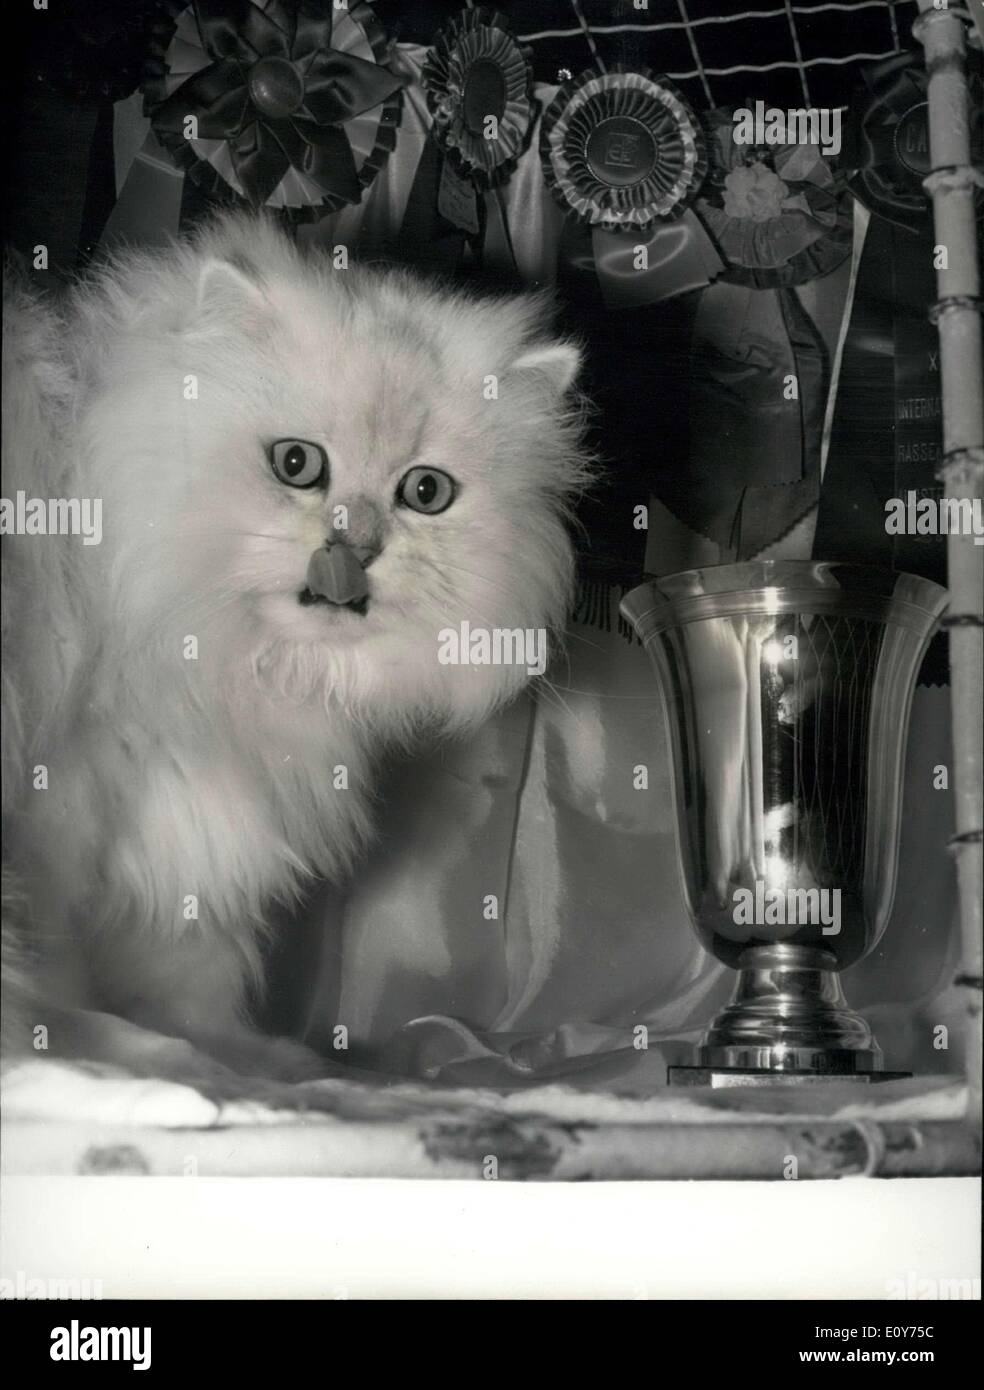 Dec. 23, 1968 - Cat Show: Introducing Champion of Champions: 5-year-old Persian Chinchilla ''Master Thomas'' was proclaimed 'Champion of Champions'' of the 45th World's Cat Show held at the Aero Club, Paris, Yesterday. - Stock Image